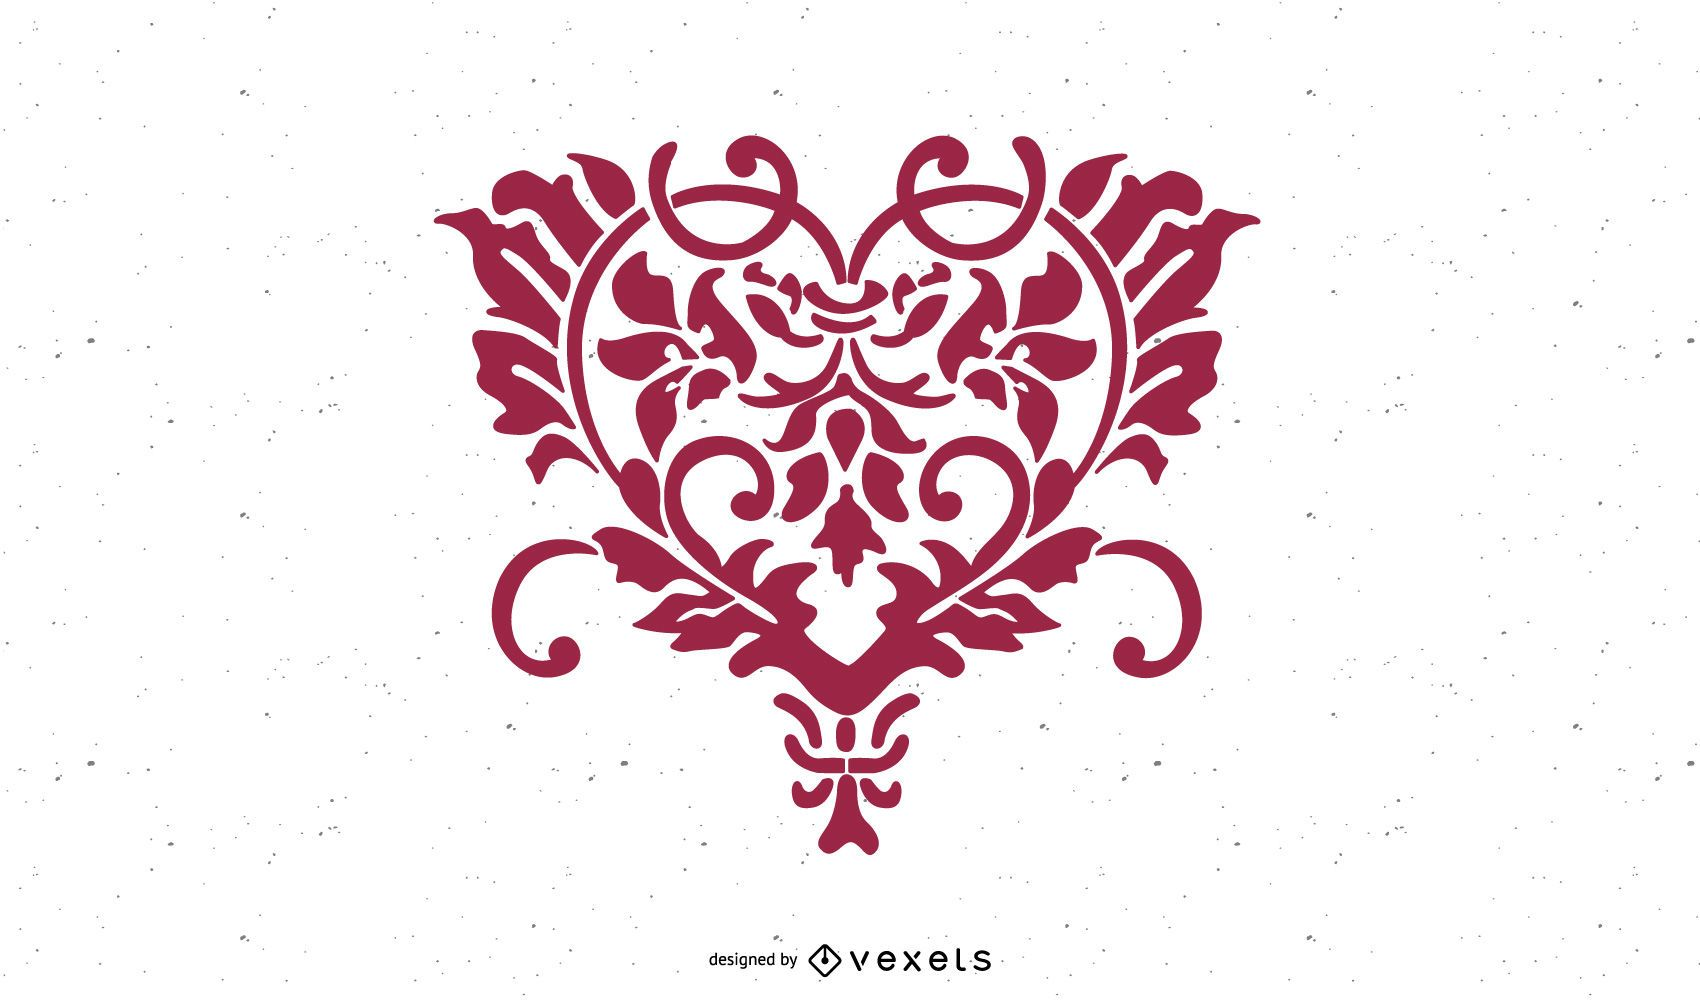 Heart Shaped Hand Drawn Floral